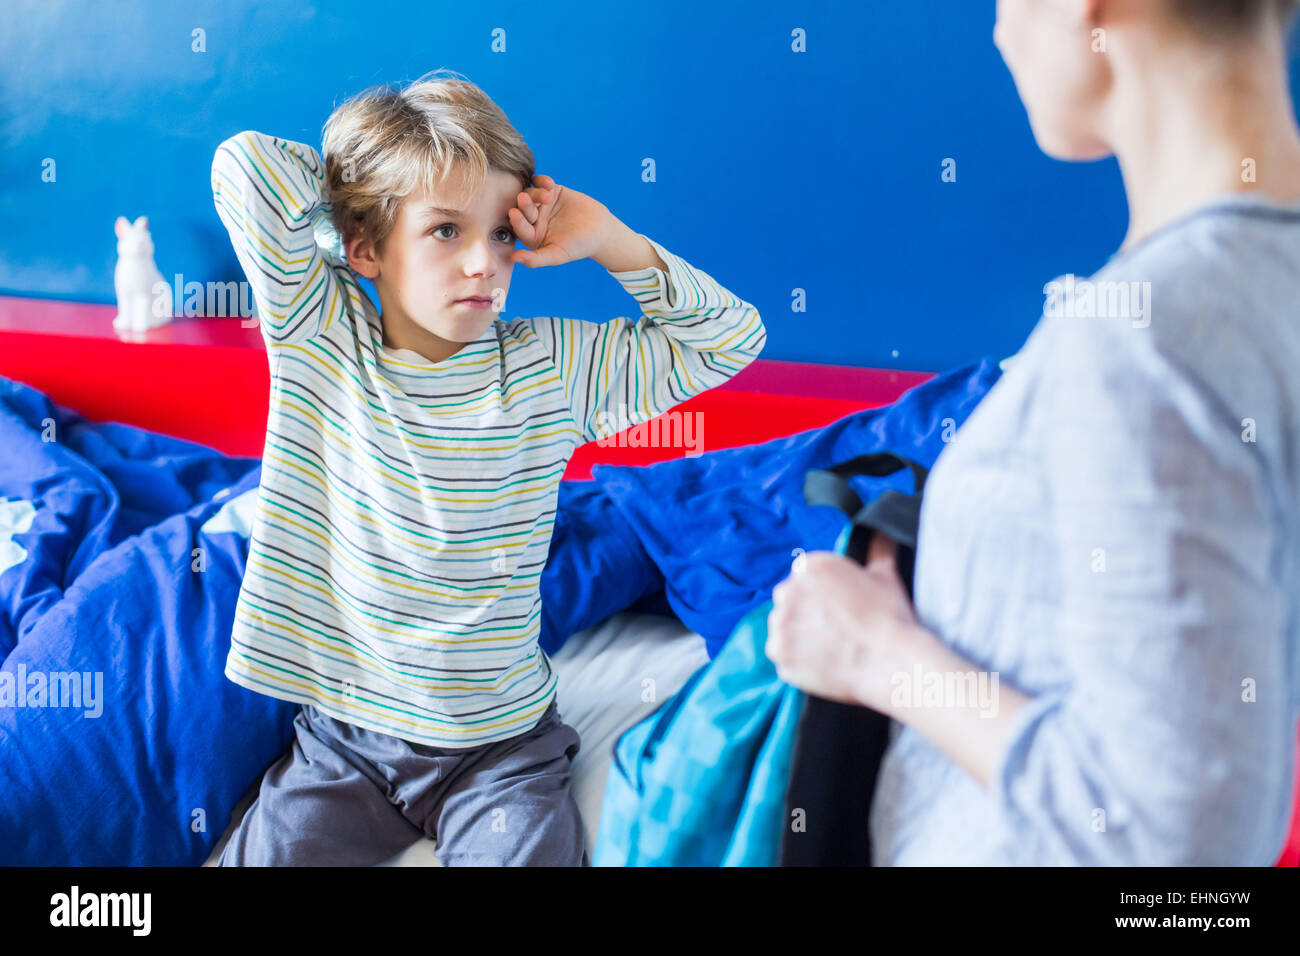 8 year old boy tired. - Stock Image